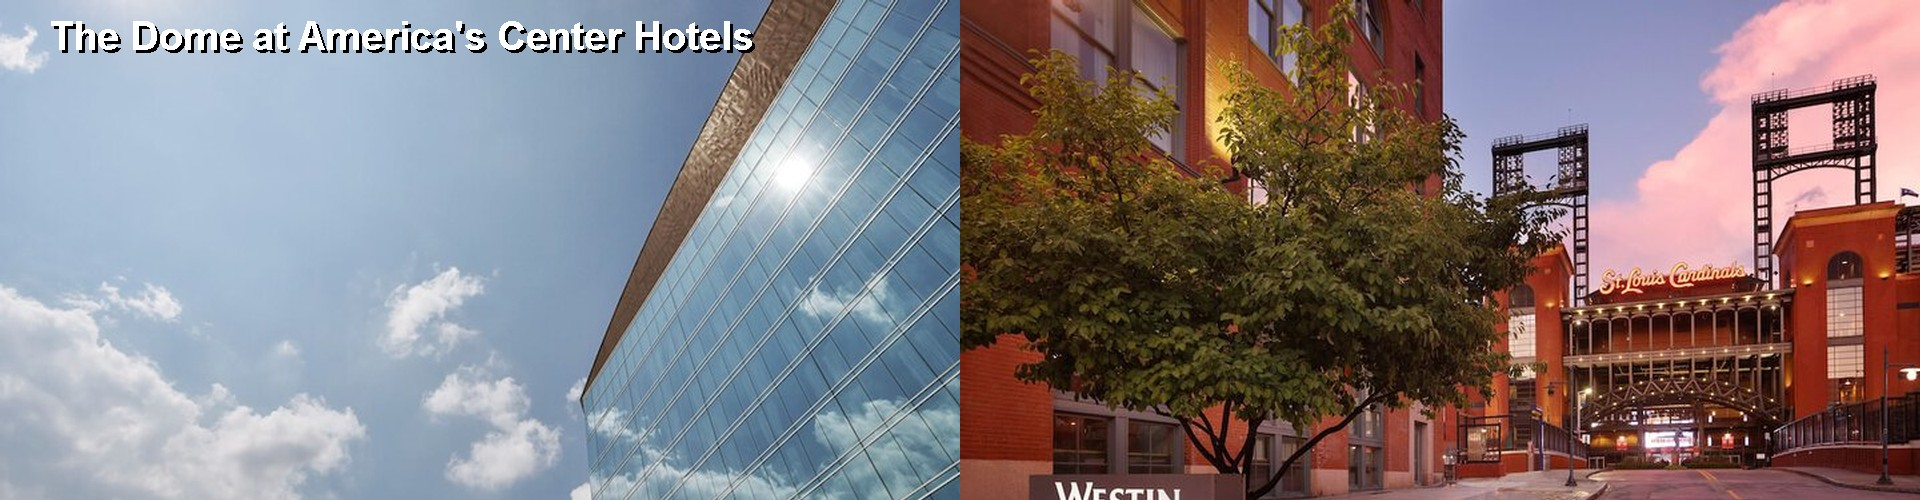 5 Best Hotels near Edward Jones Dome - Saint Louis Rams